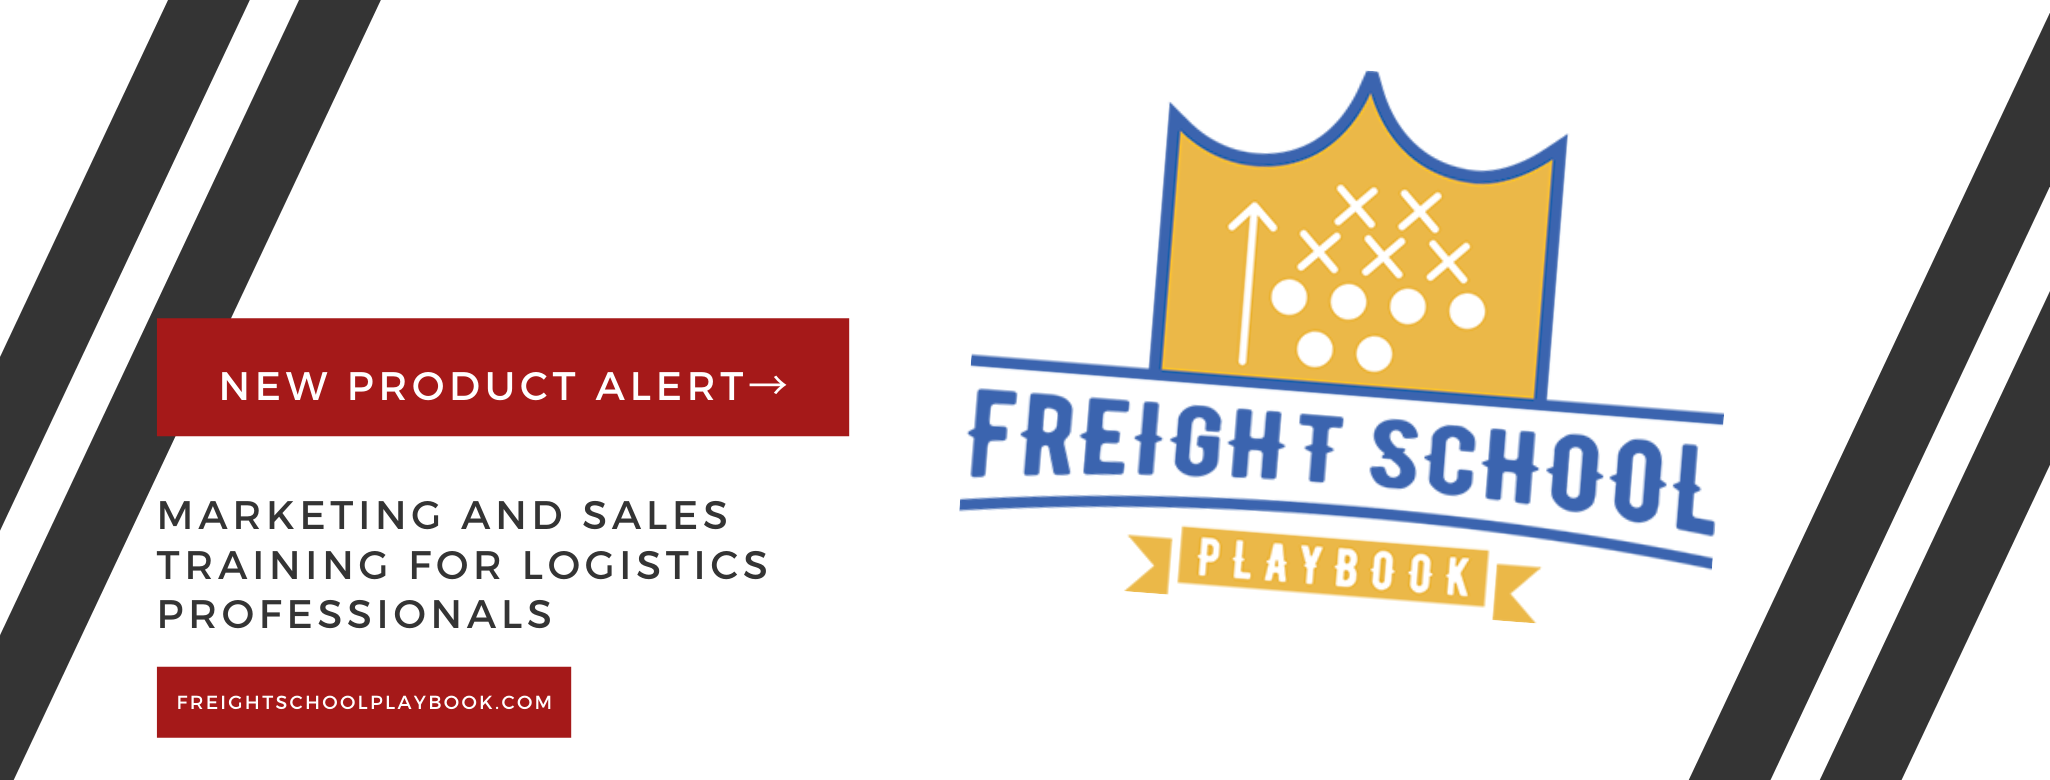 Freight School Playbook: How it helps your sales and marketing goals